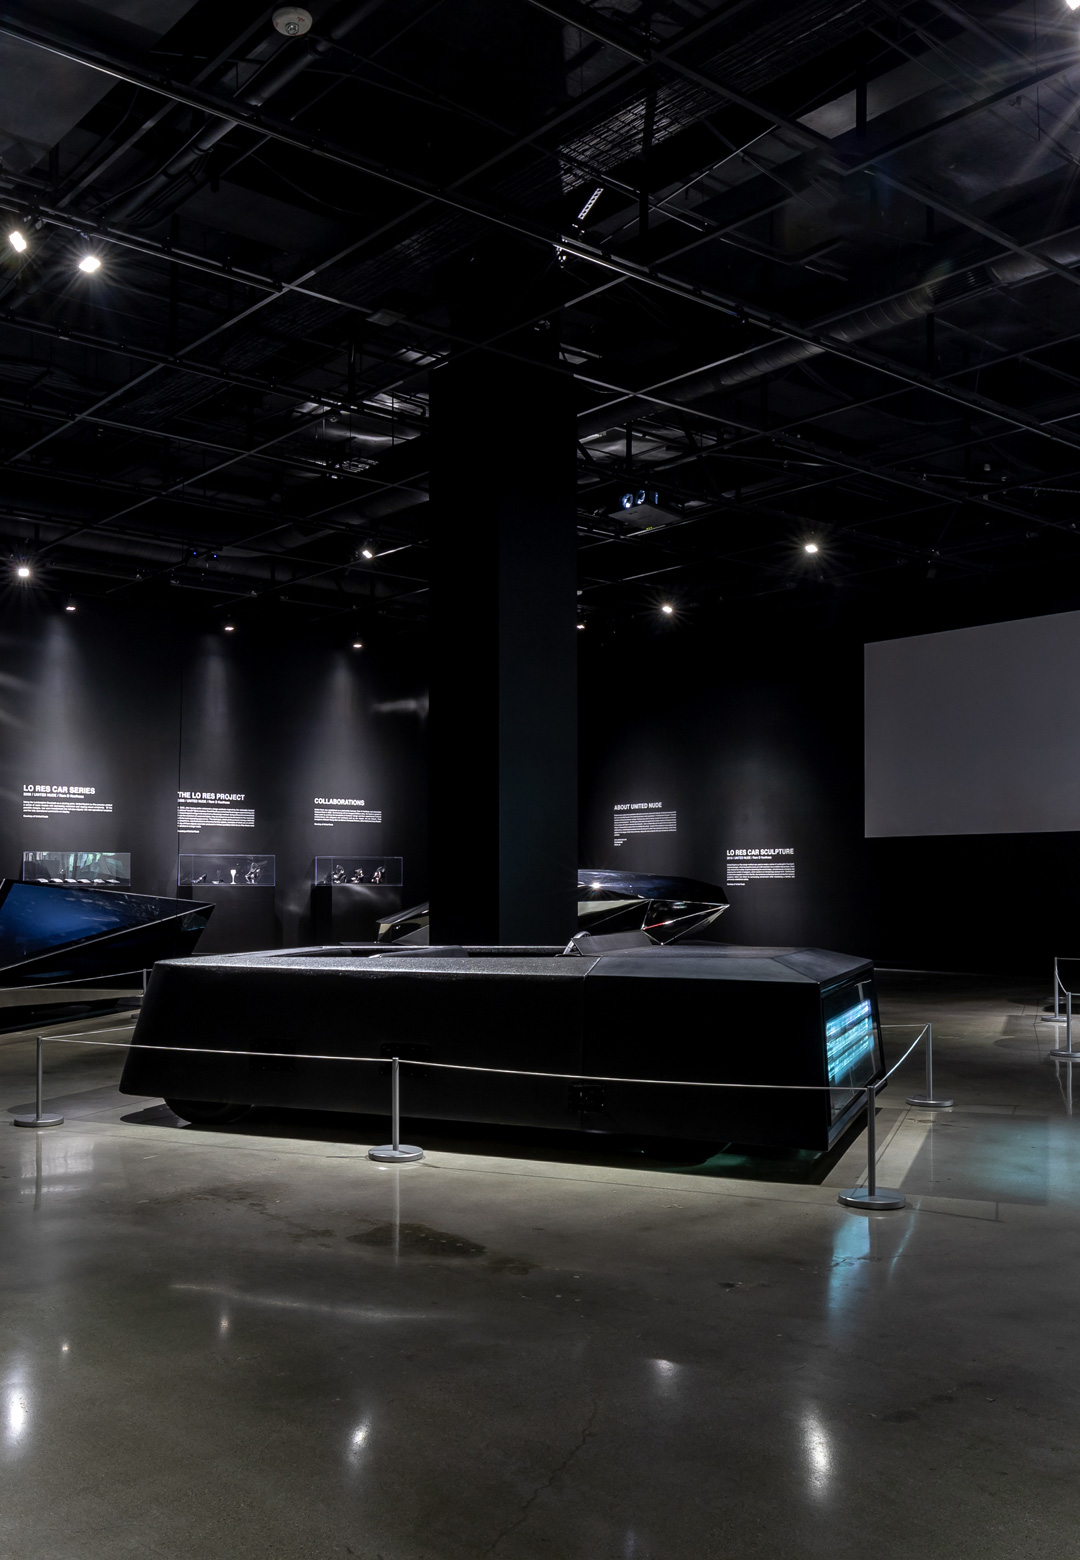 The Disruptors exhibition, on display at the Petersen Automotive Museum | Disruptors| Rem D Koolhaas and Joey Ruiter | Petersen Automotive Museum | STIRworld